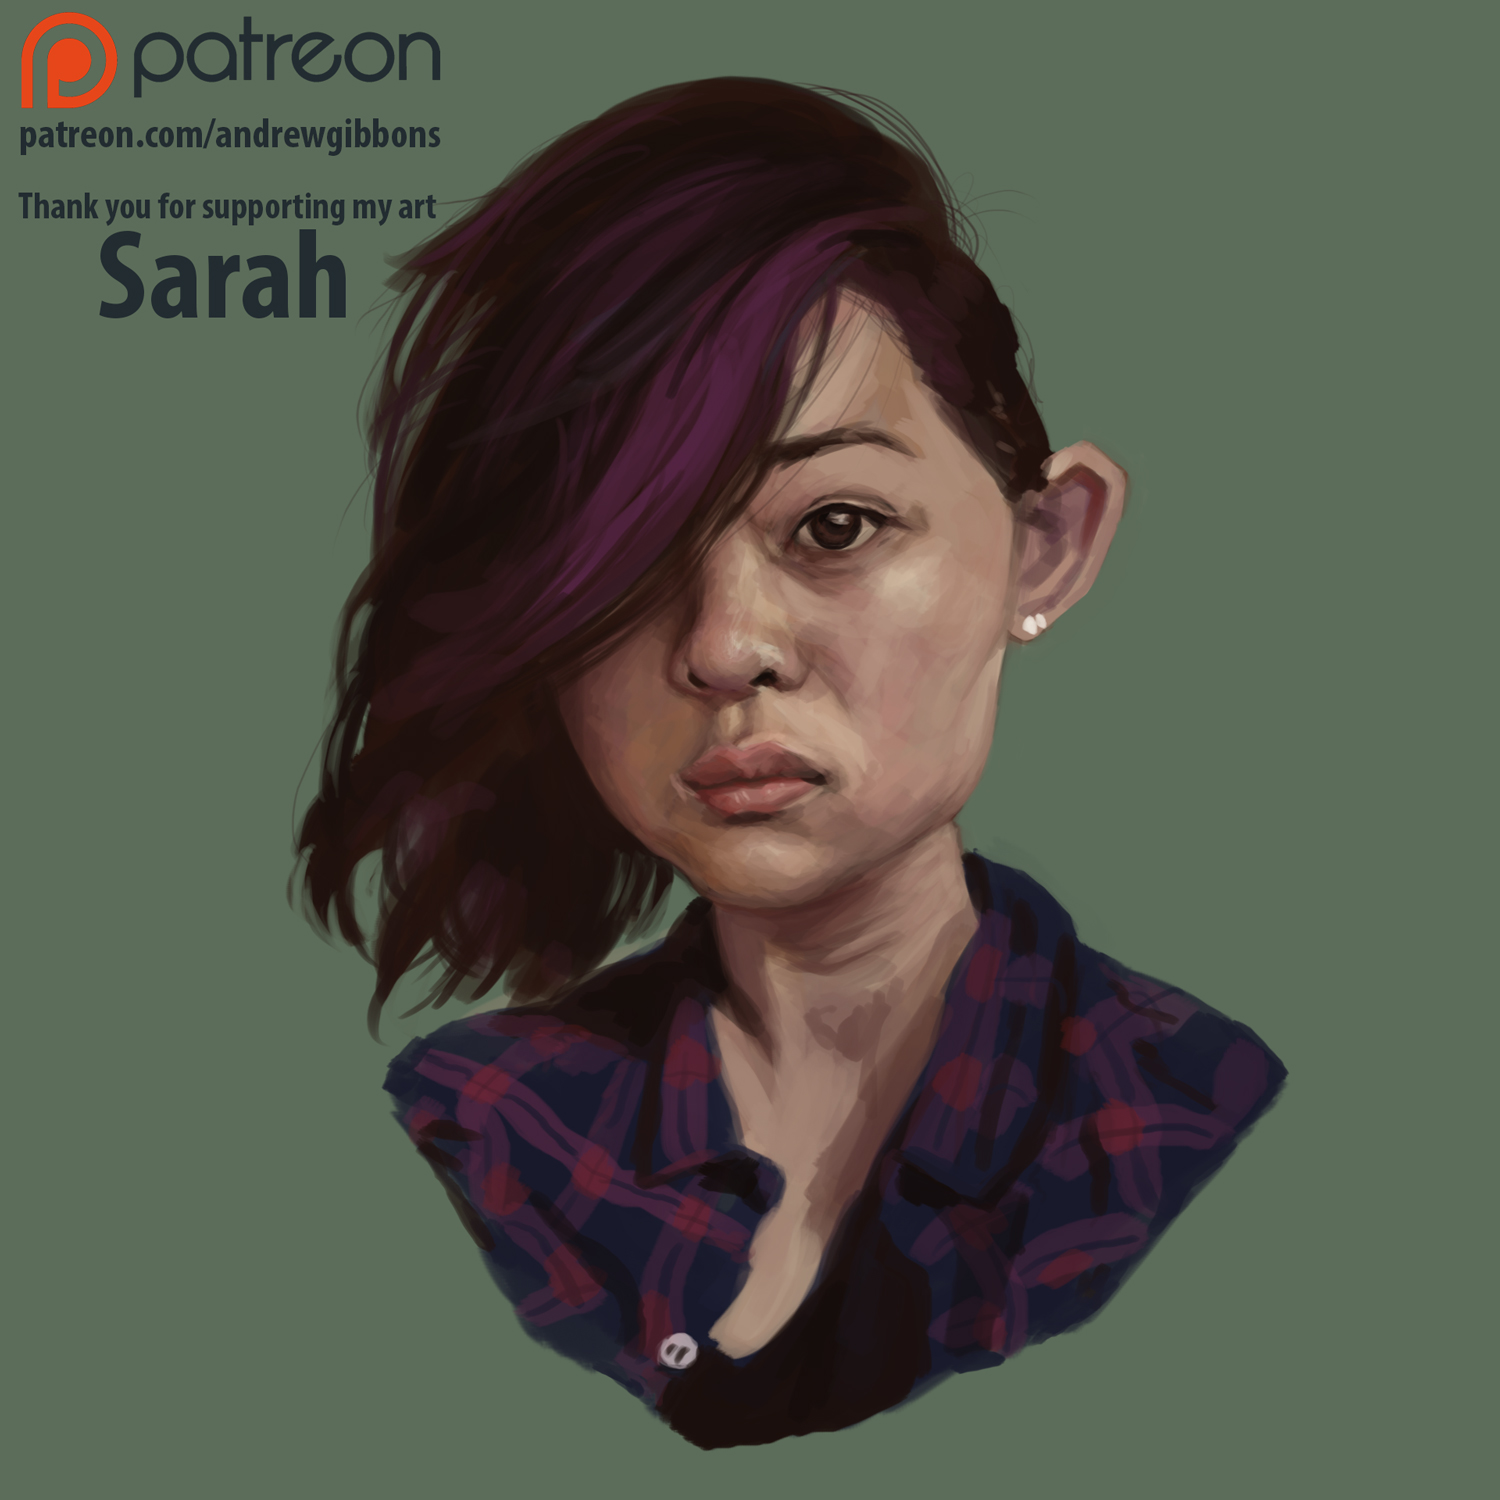 [Image: patron_portrait___sarah_by_andrew_gibbons-dbg5zpe.jpg]